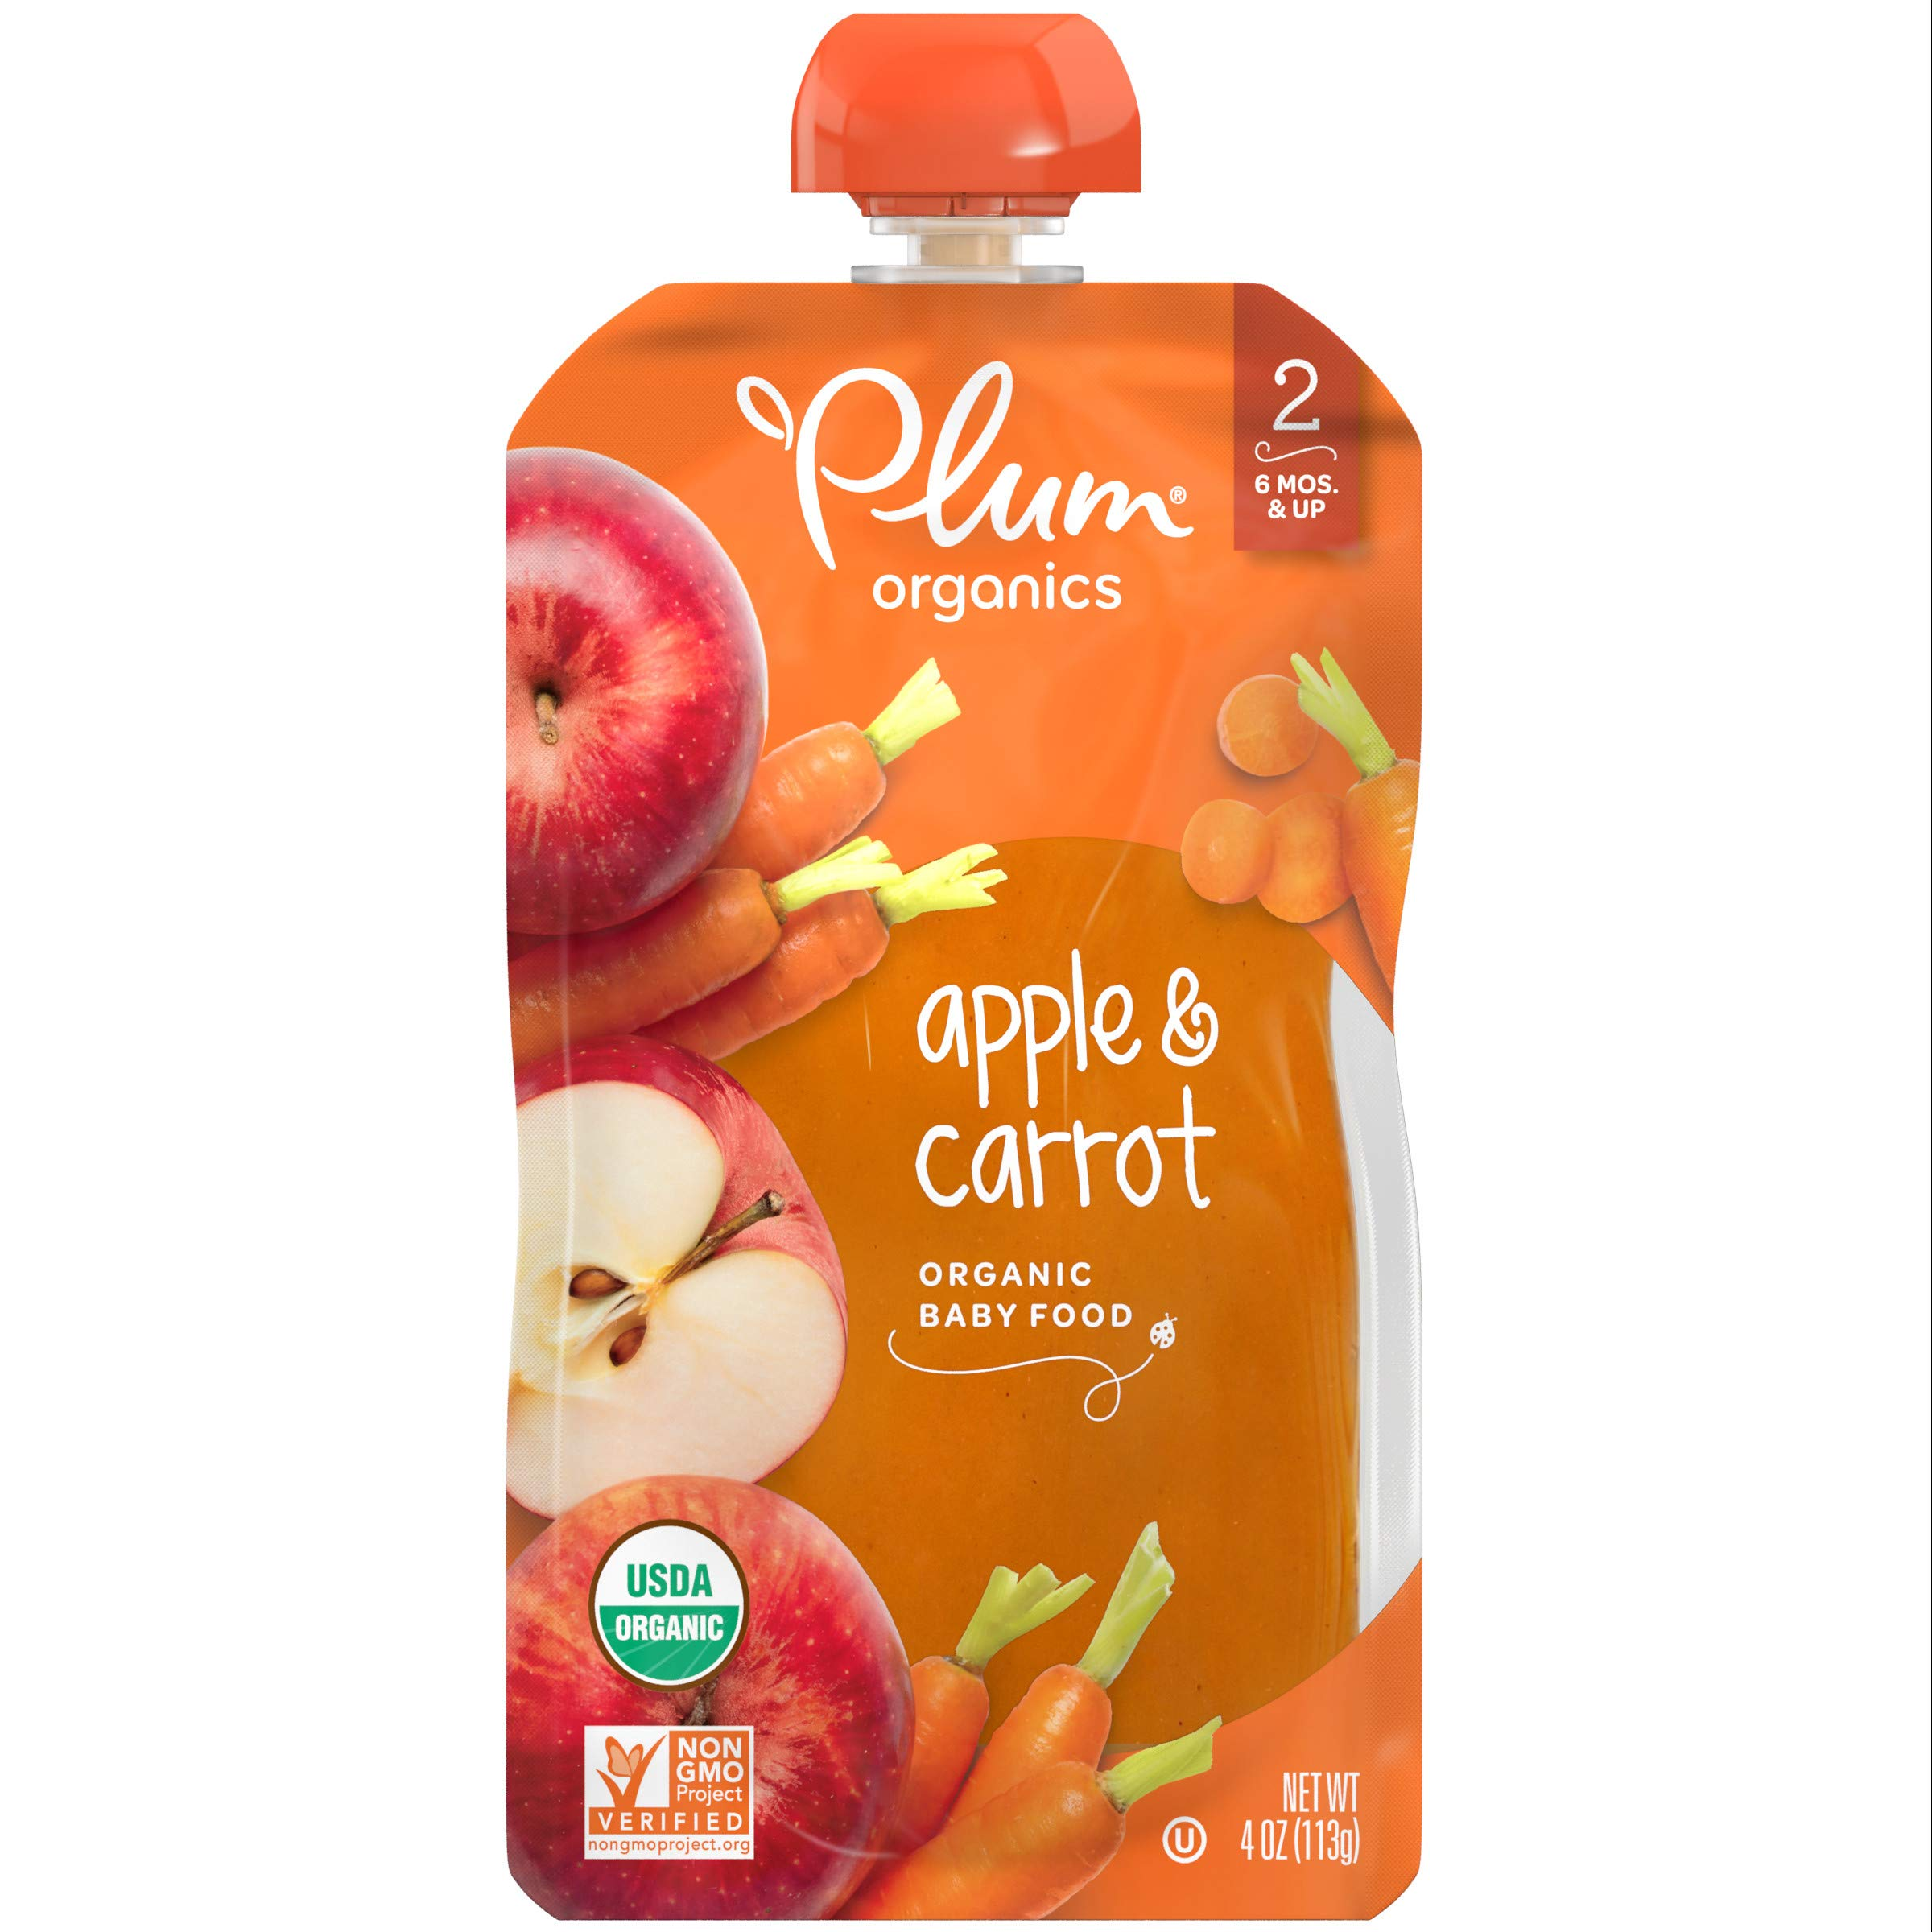 Plum Organics Stage 2, Organic Baby Food, Apple and Carrot, 4 Ounce